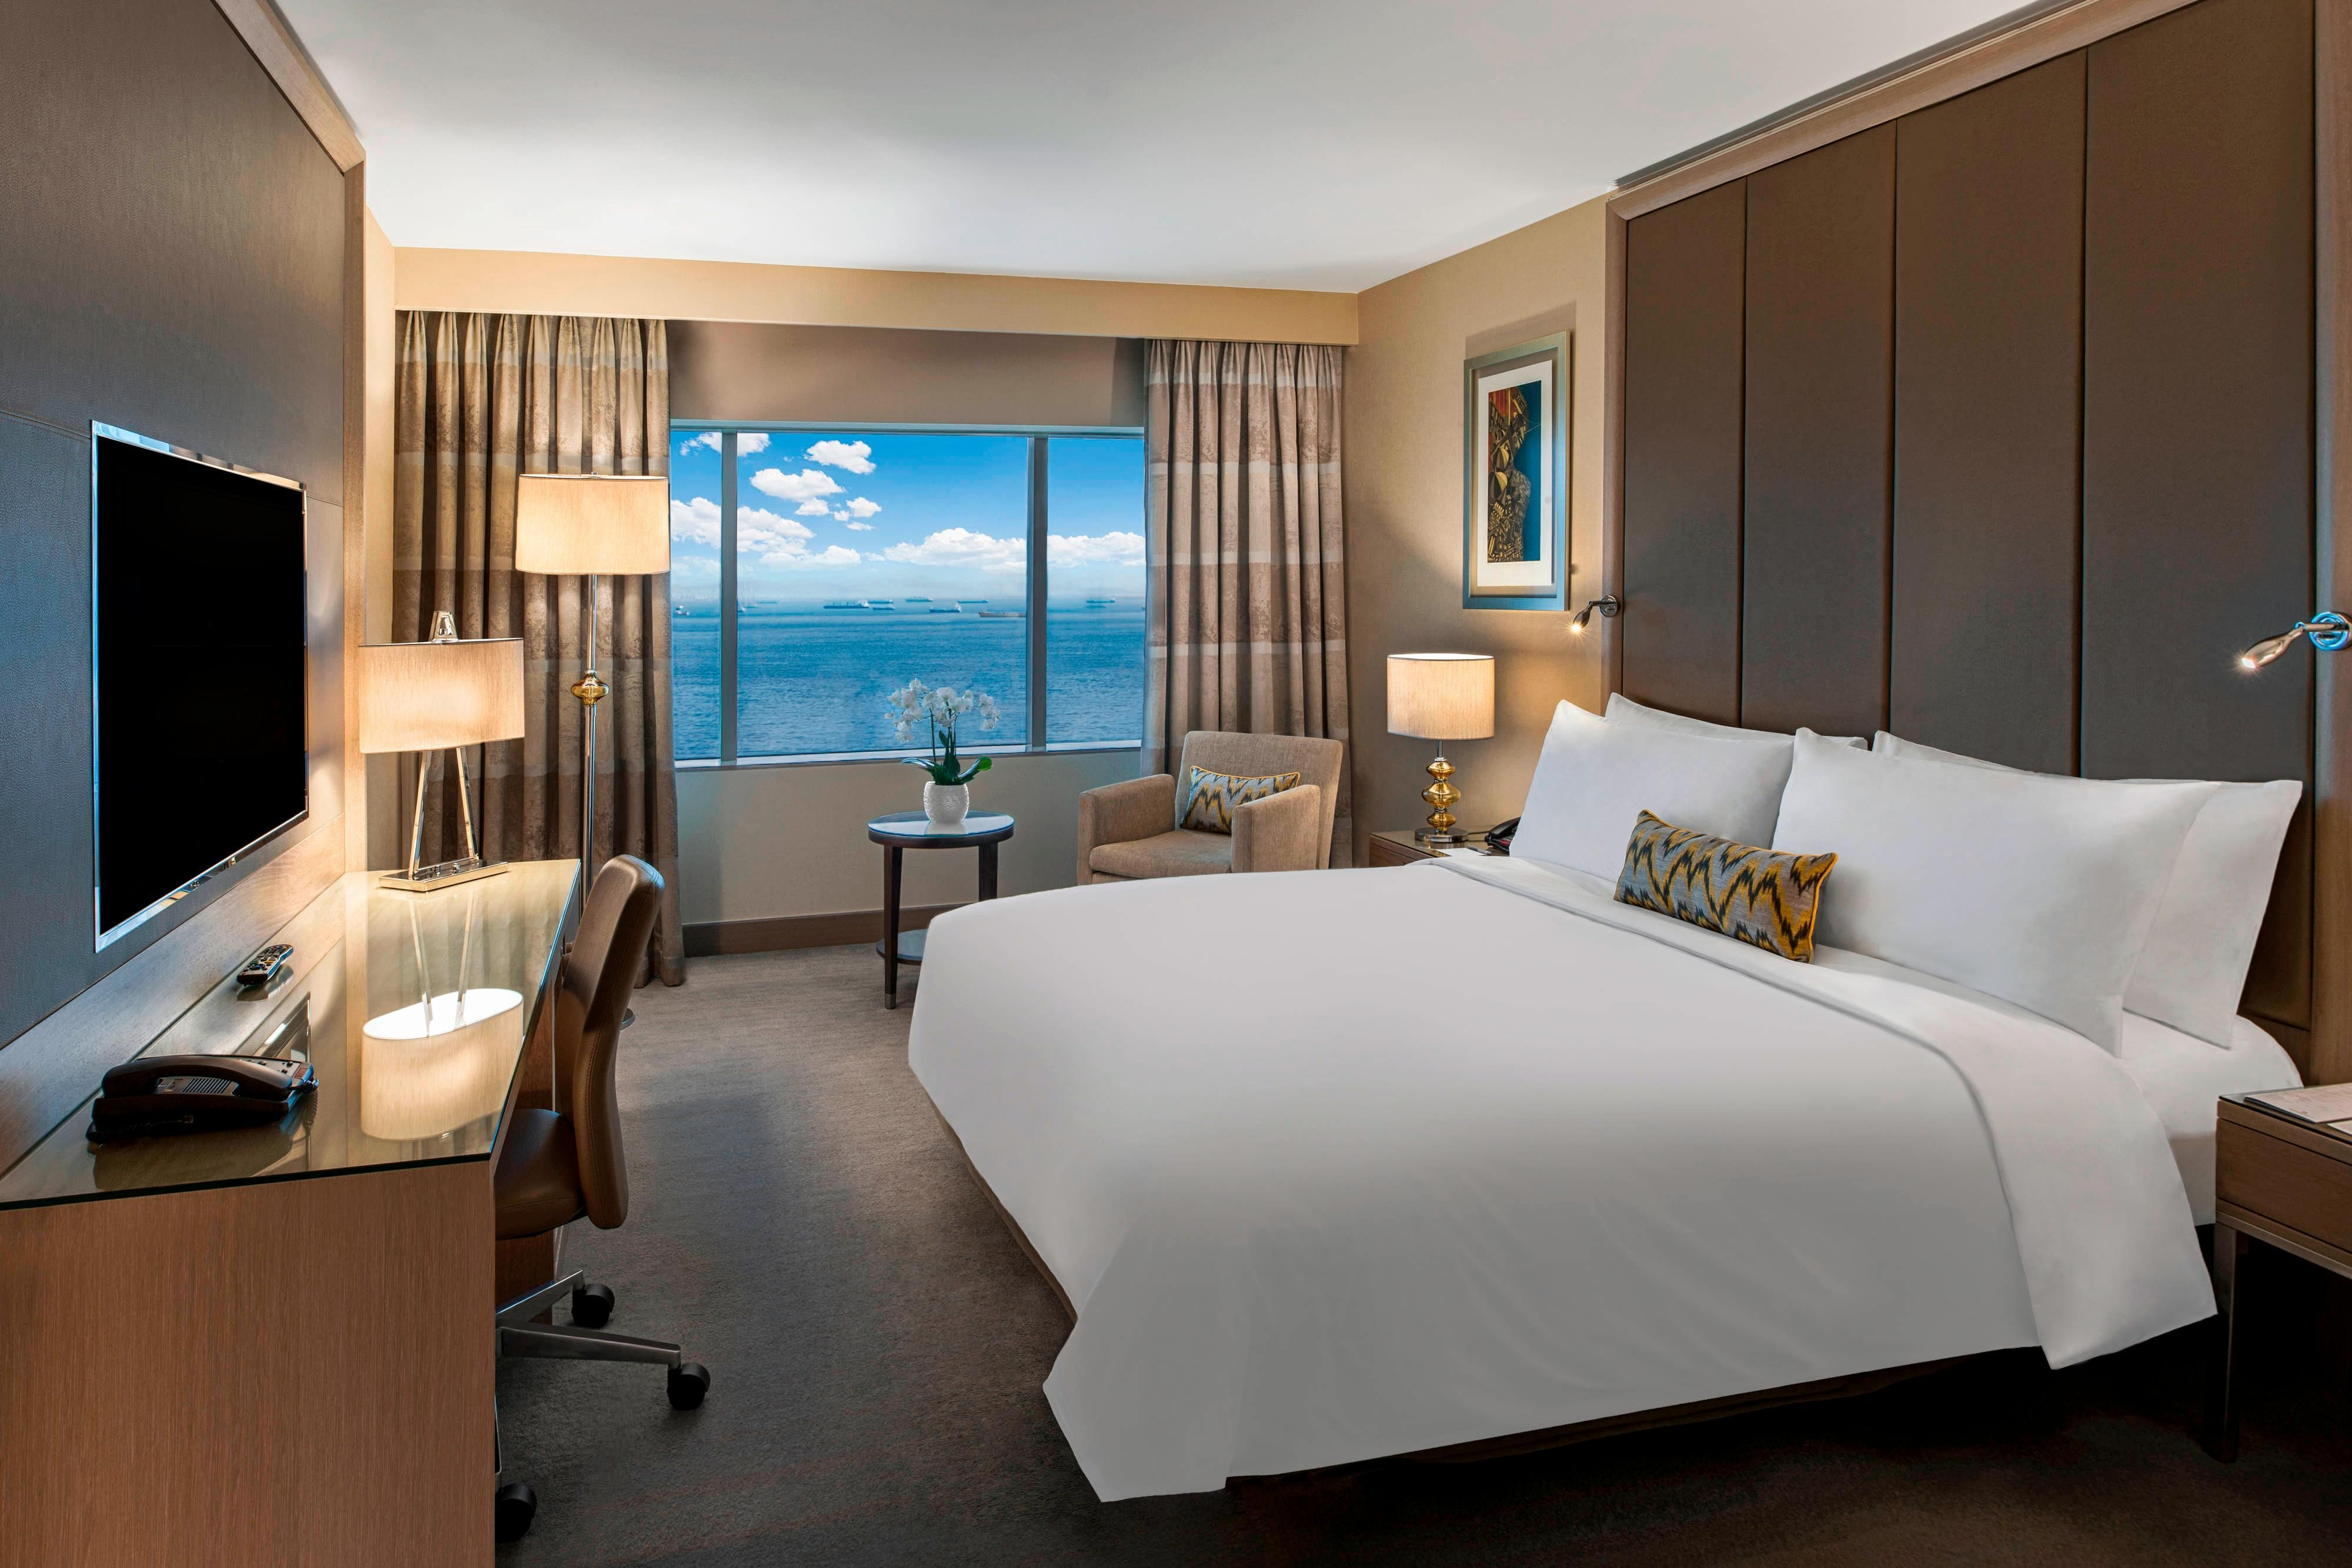 Deluxe Guest room - sea view